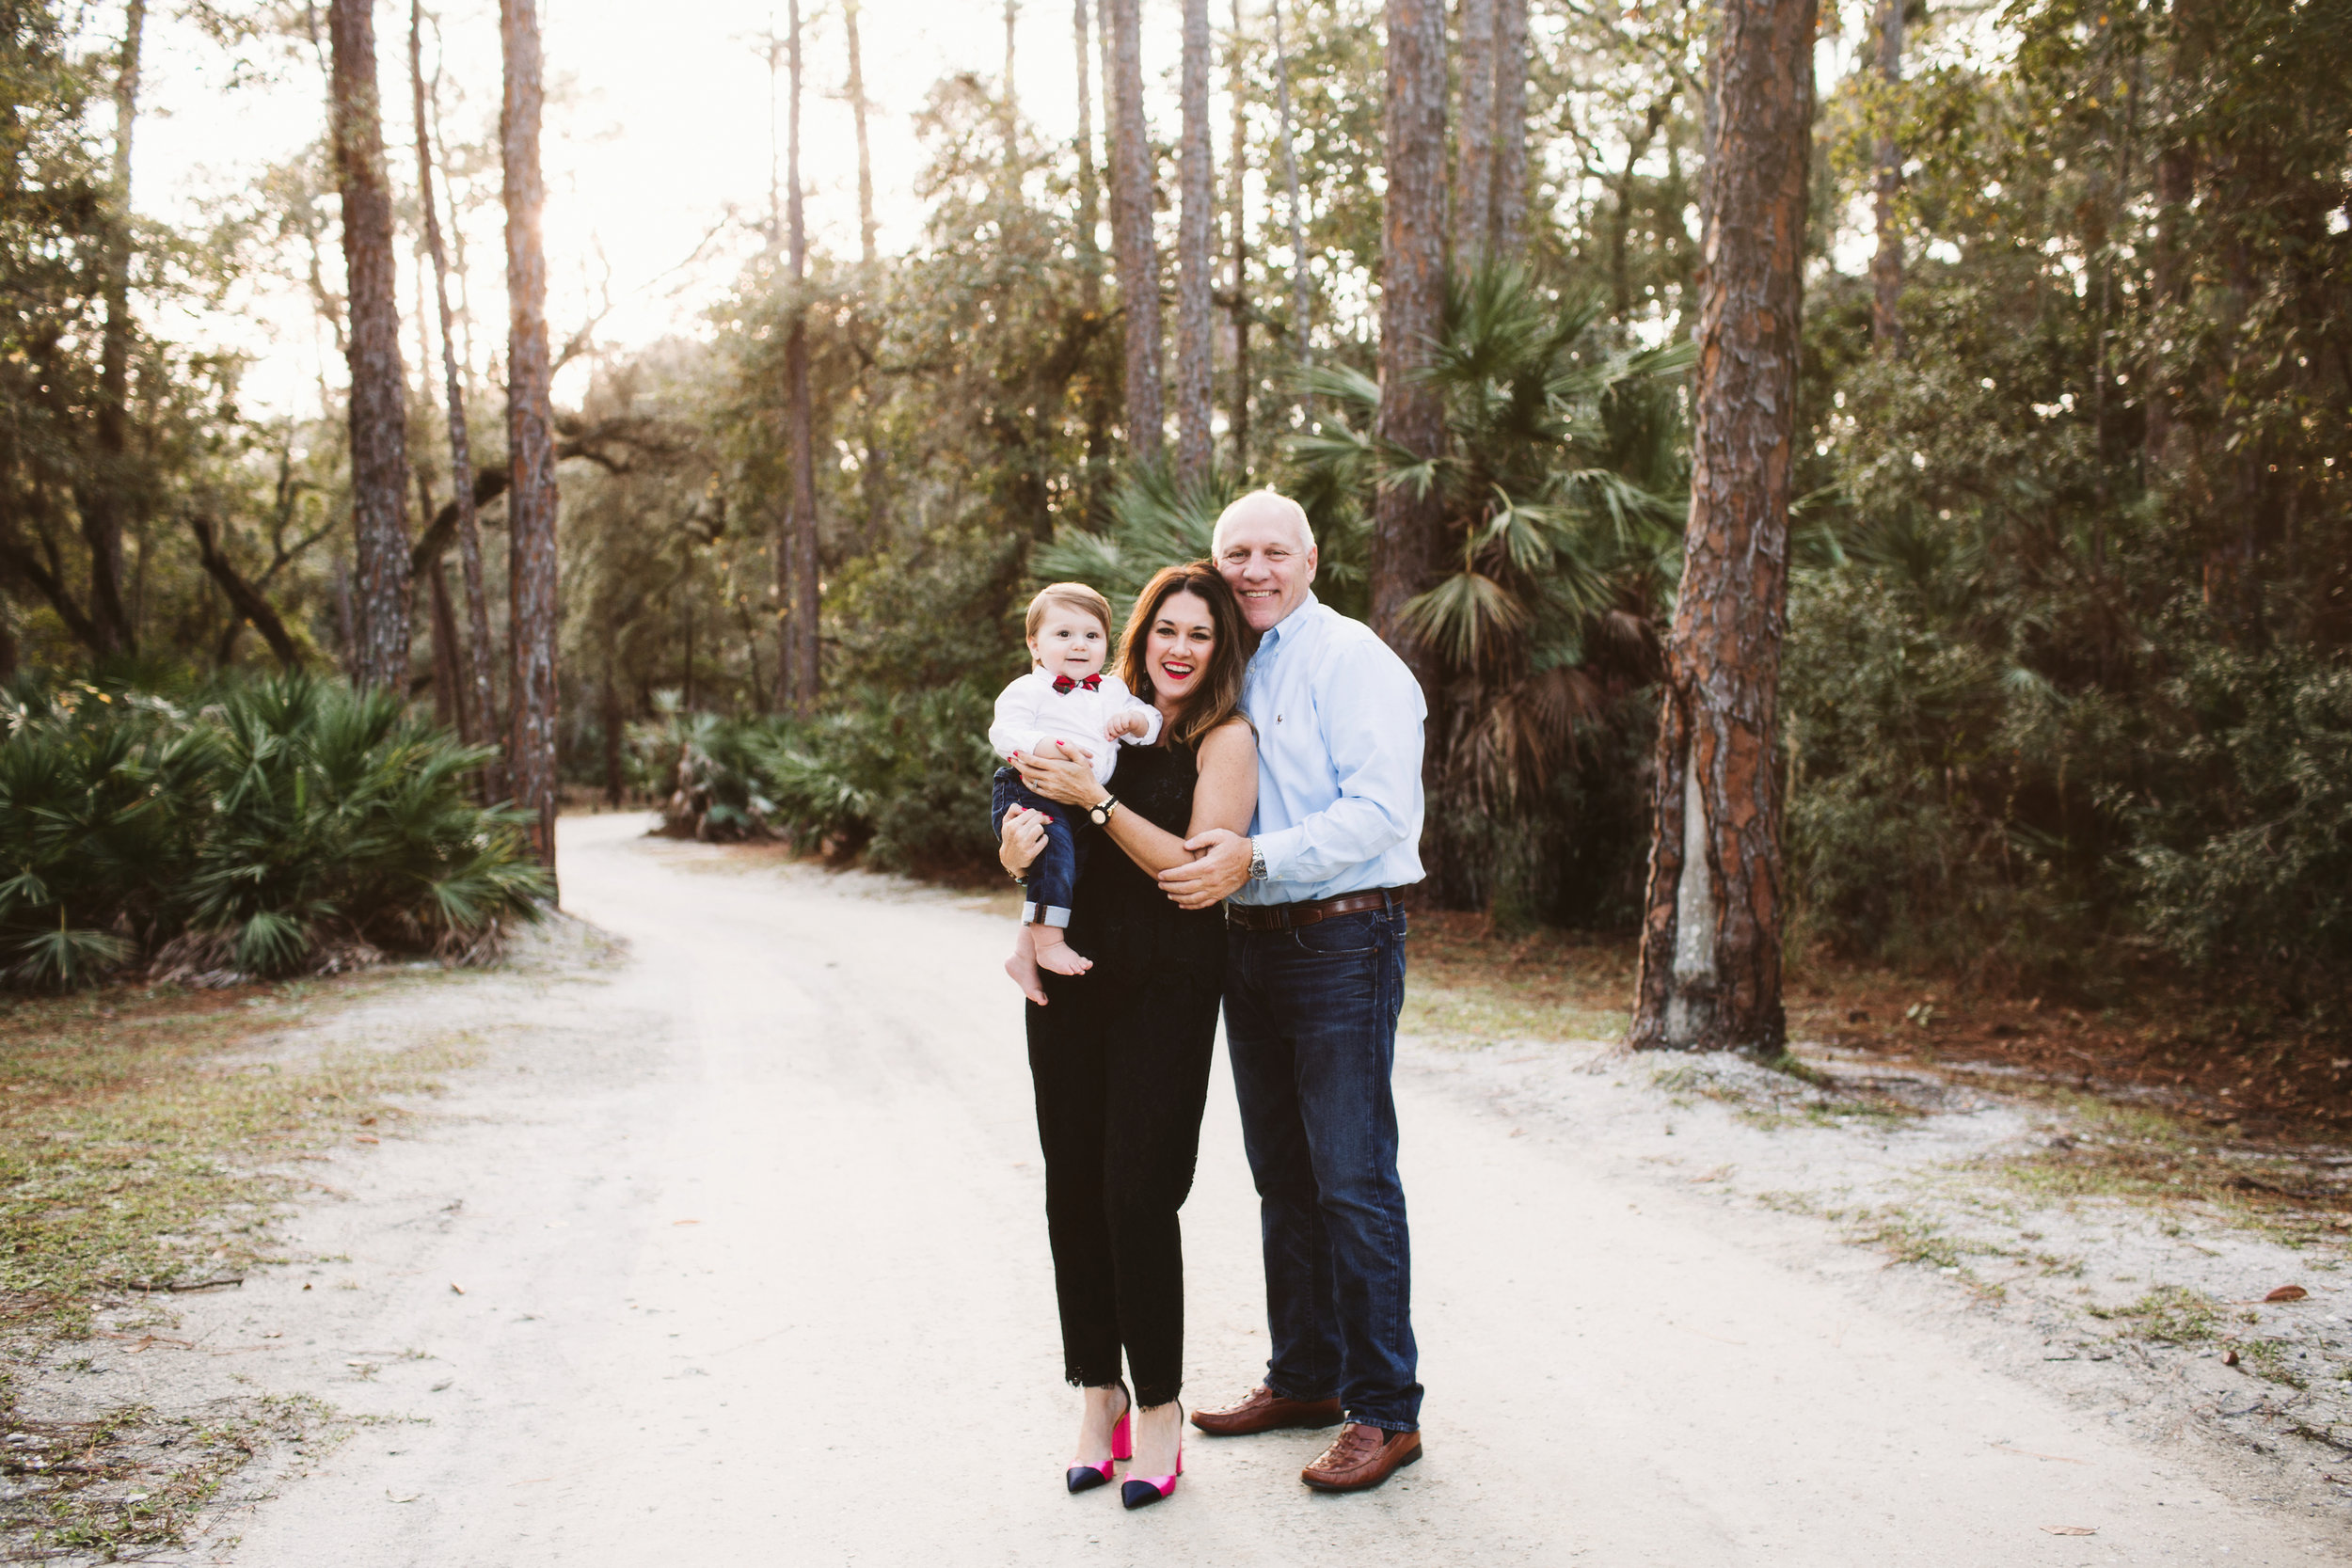 Holiday Lifestyle Family Session | Orlando,FL |Vanessa Boy | vanessaboy.com-124.com .jpg